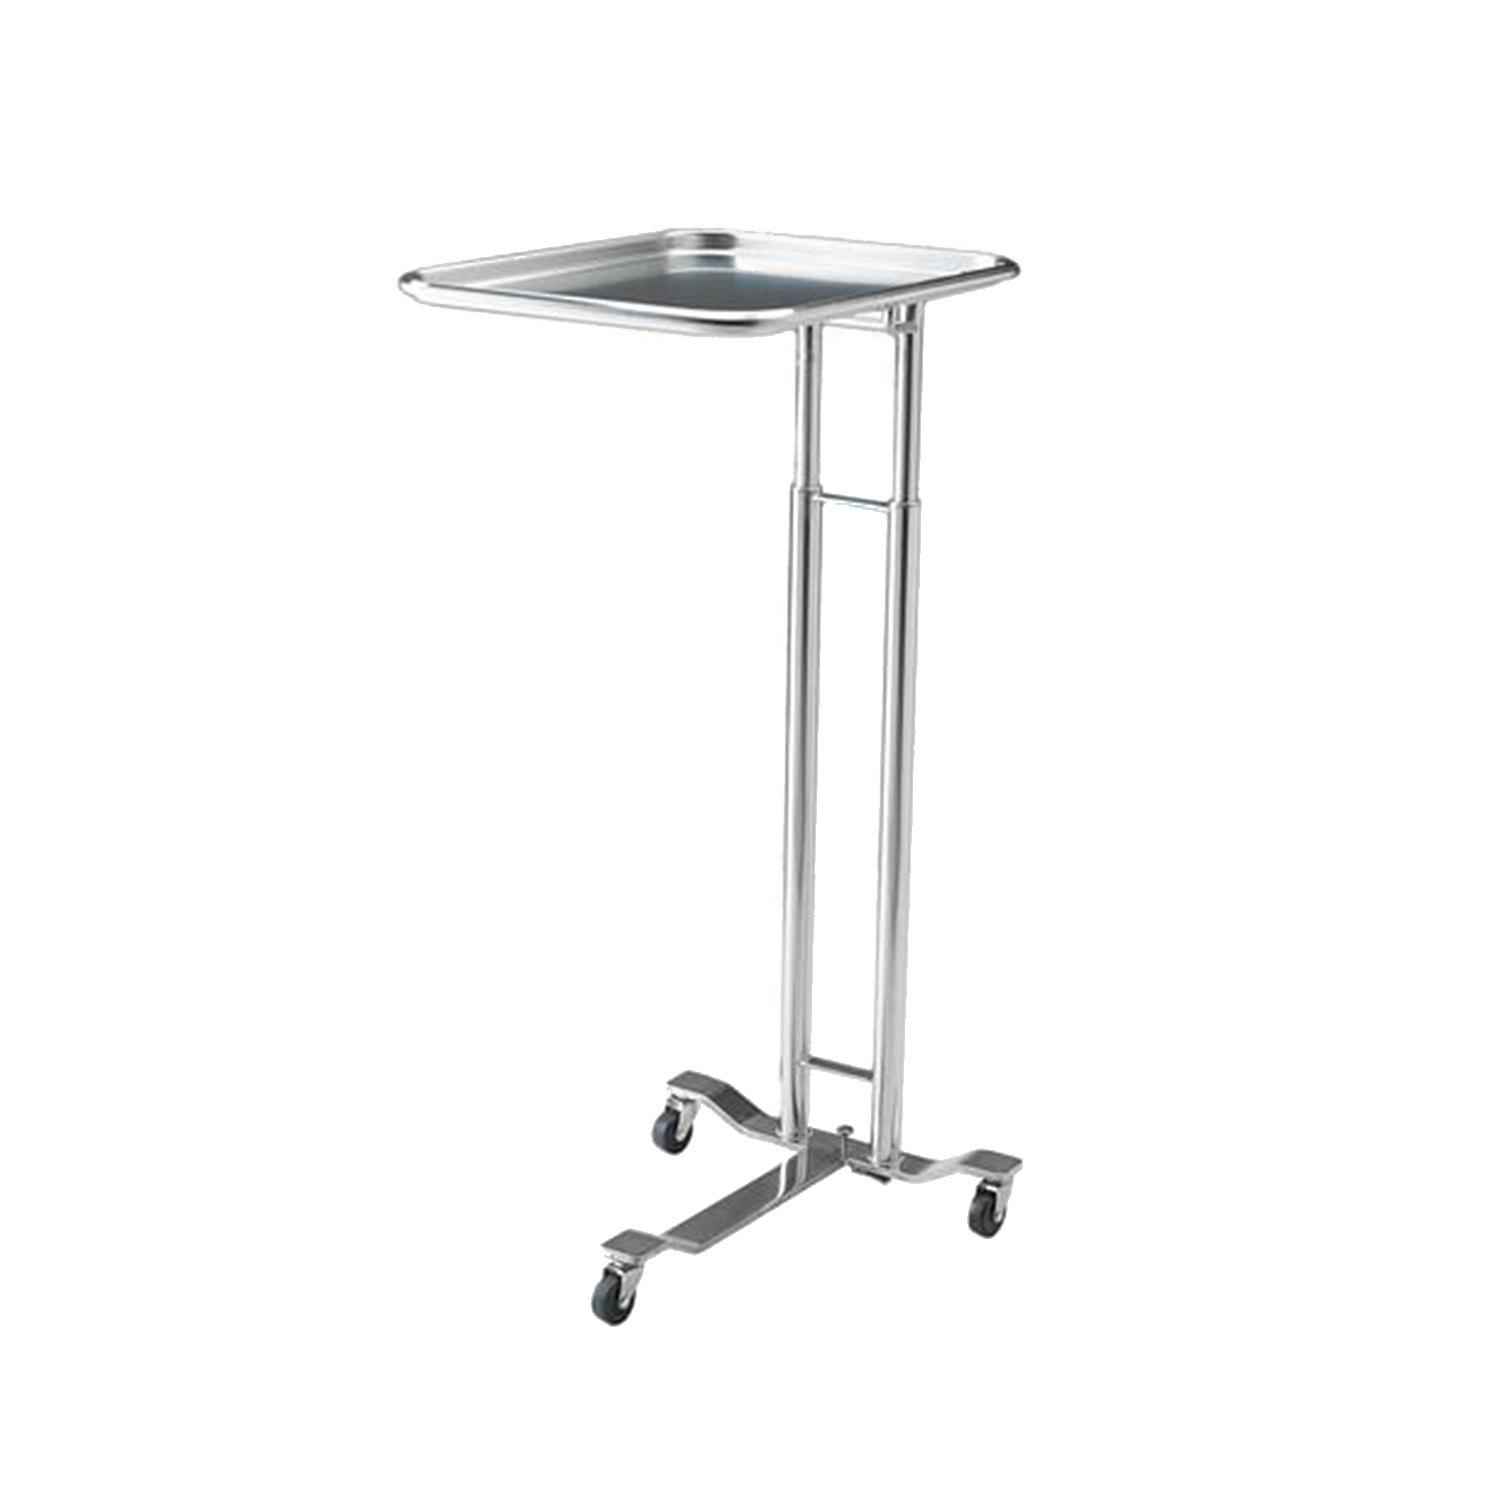 Pedigo 1069 Foot Operated Stainless Steel Mayo Stand